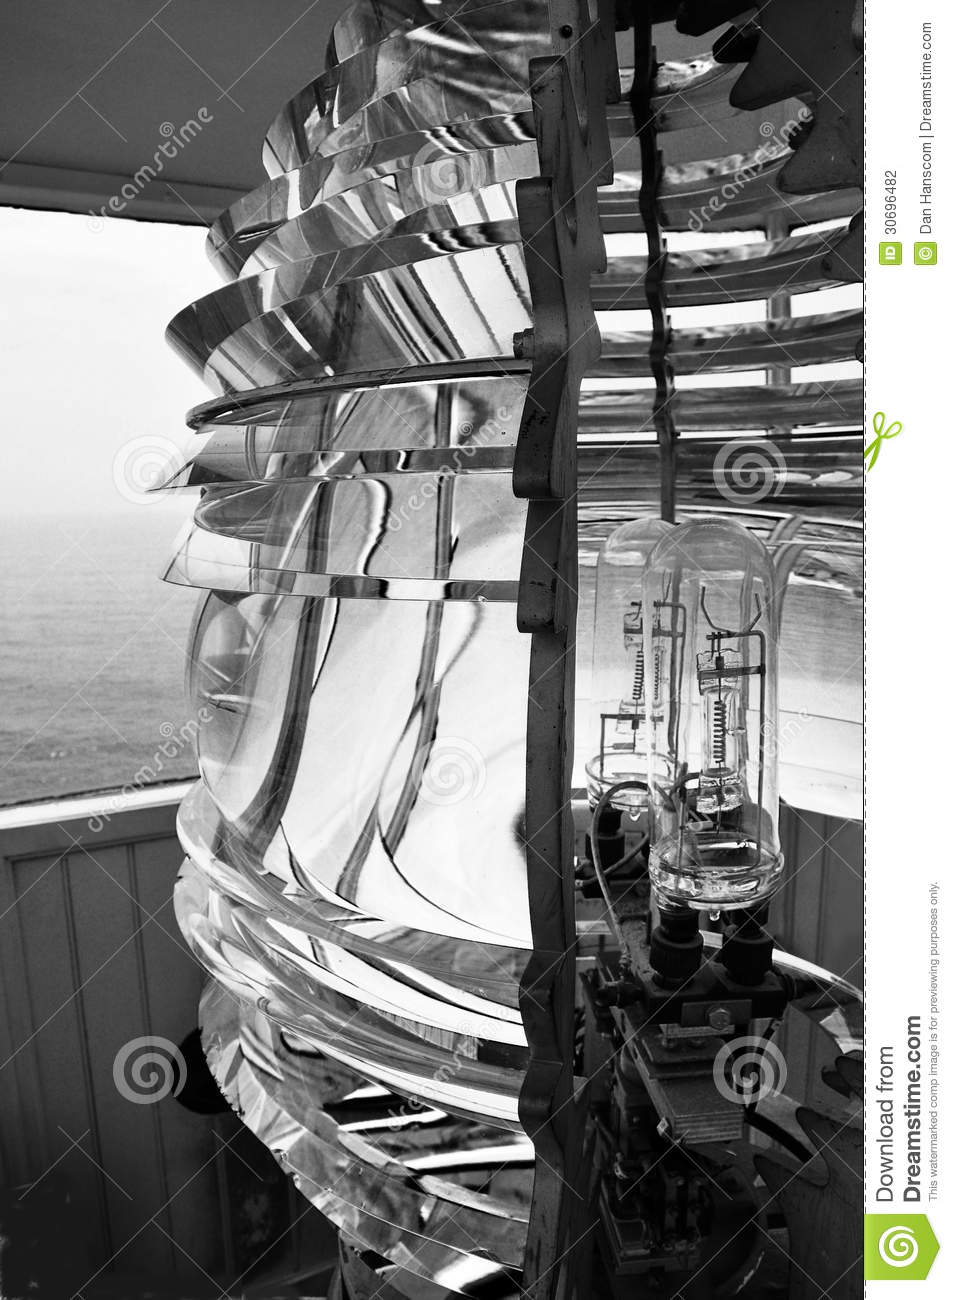 Miroir de phare photographie stock image 30696482 for Miroir noir download